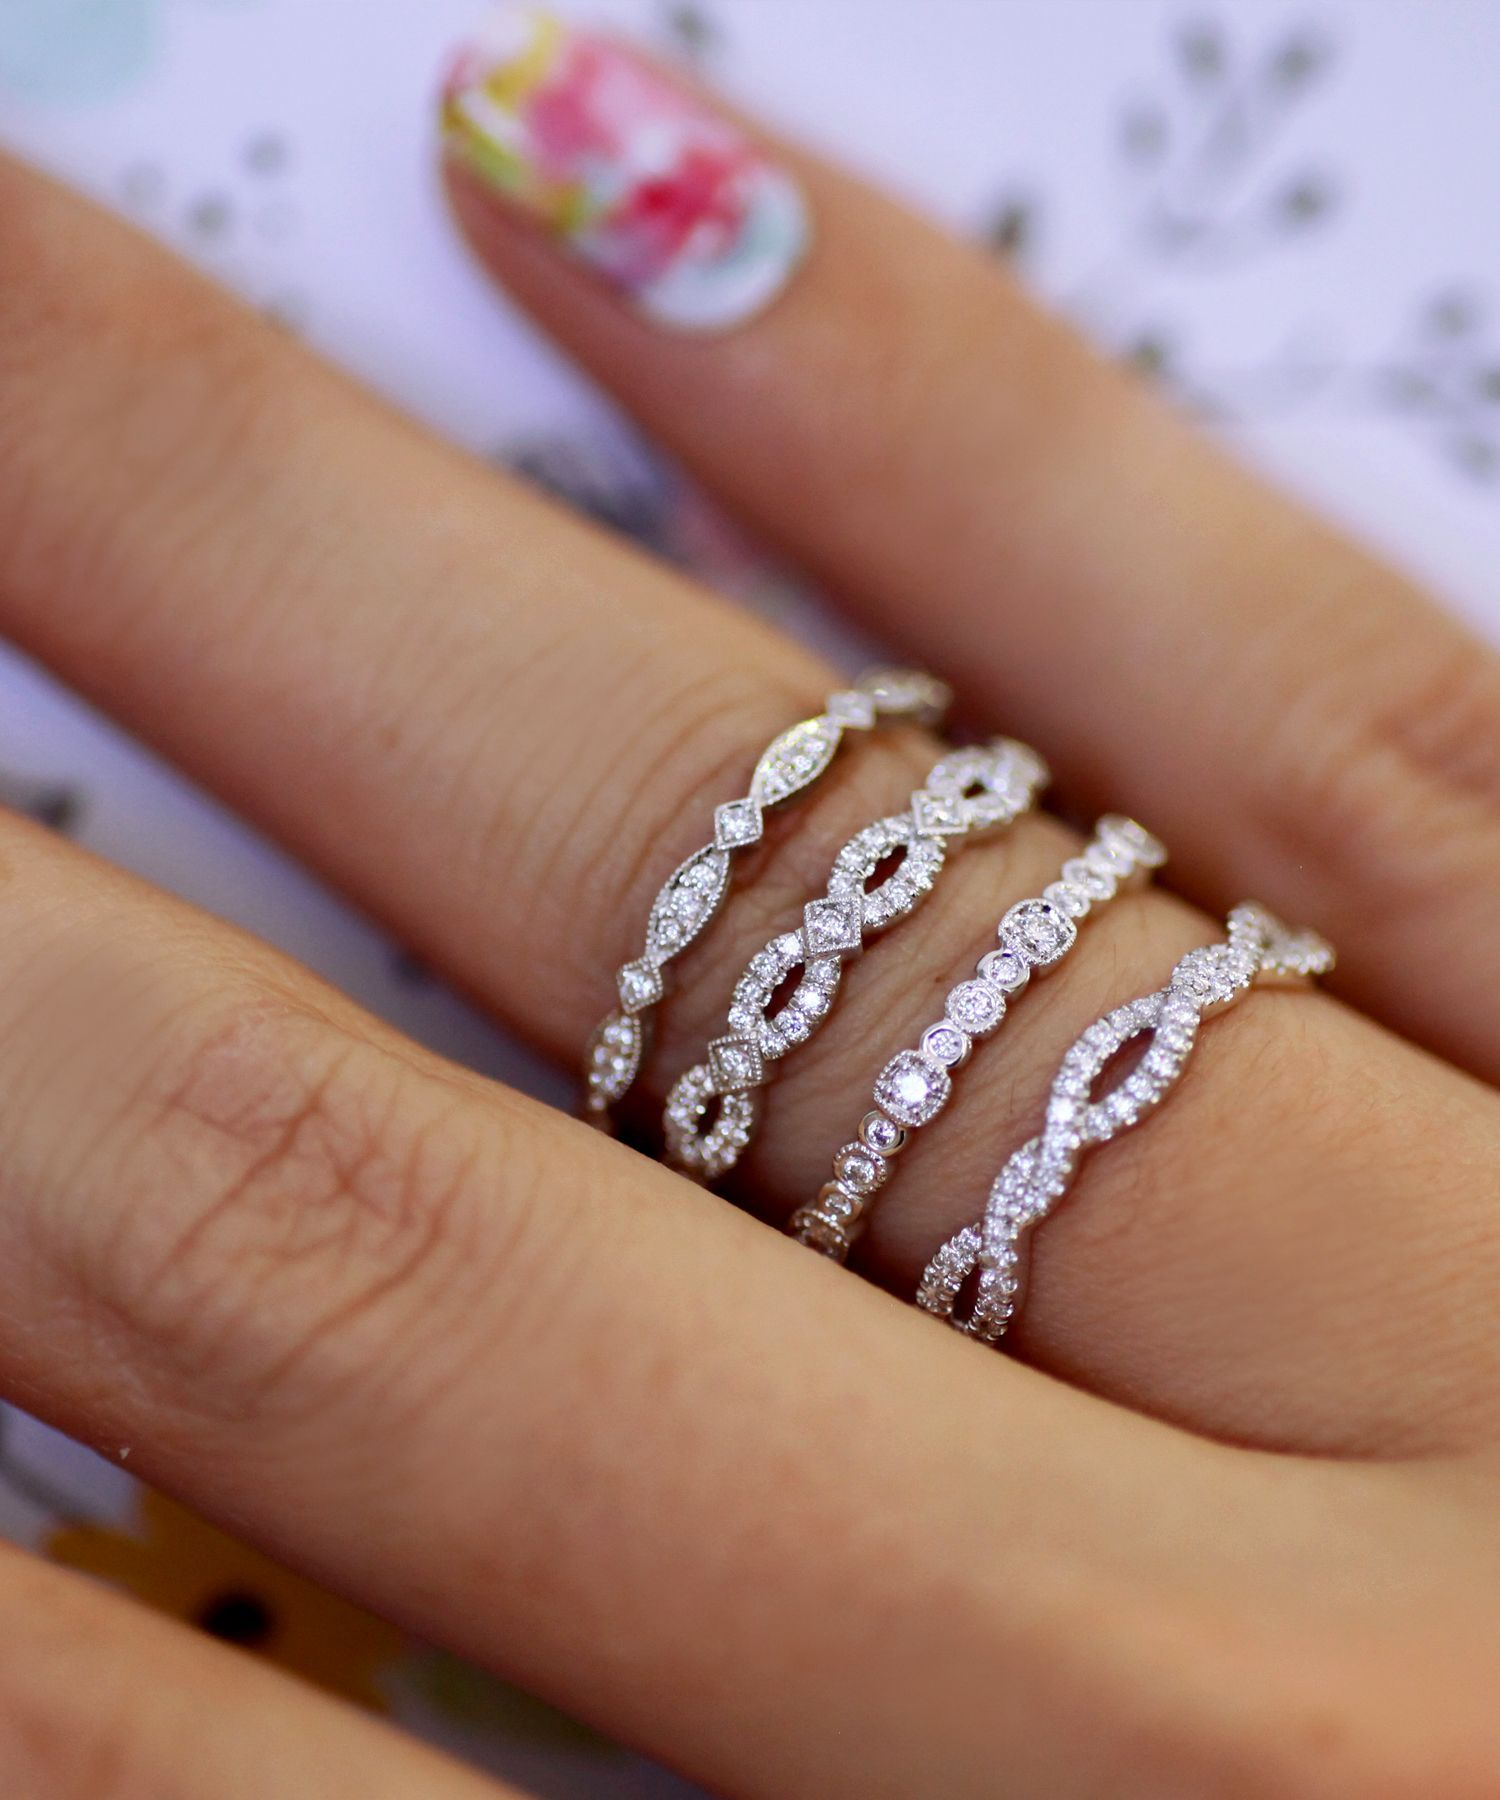 FASHION RING WC7023 Beautiful braided band featuring